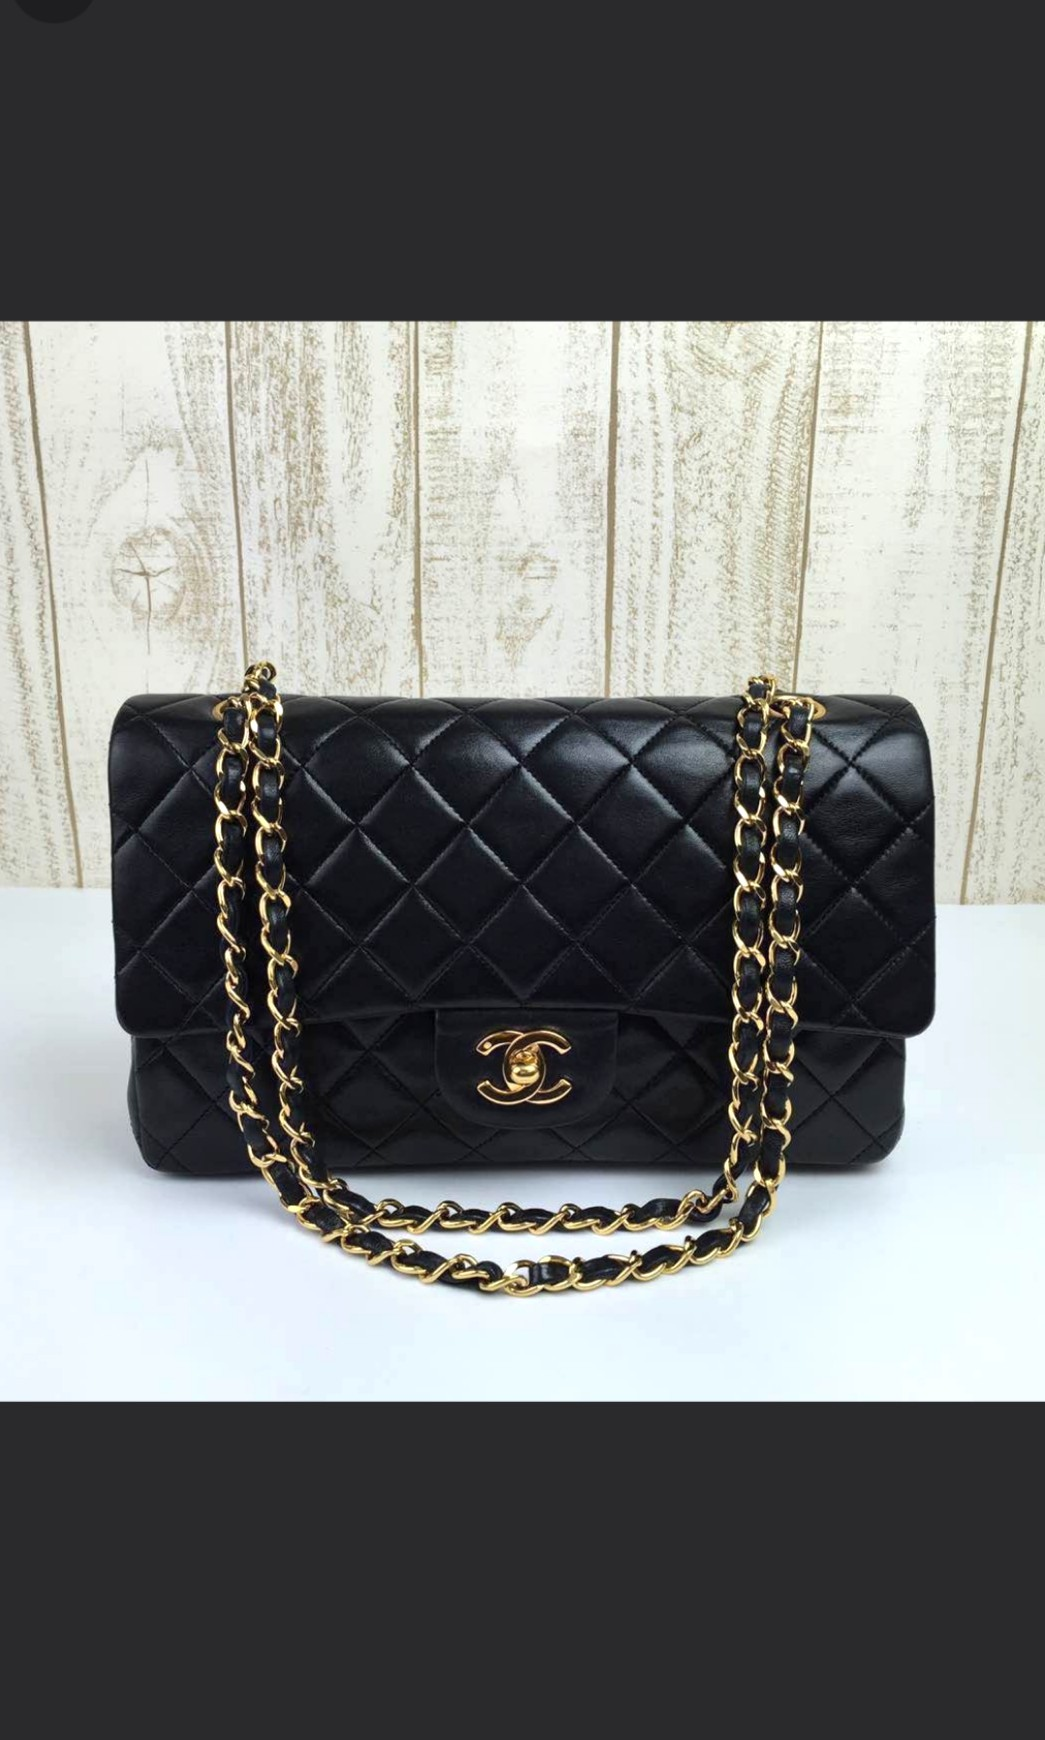 43cf1285a3b9 PRICE REDUCED  Chanel classic double flap medium lambskin GHW ...